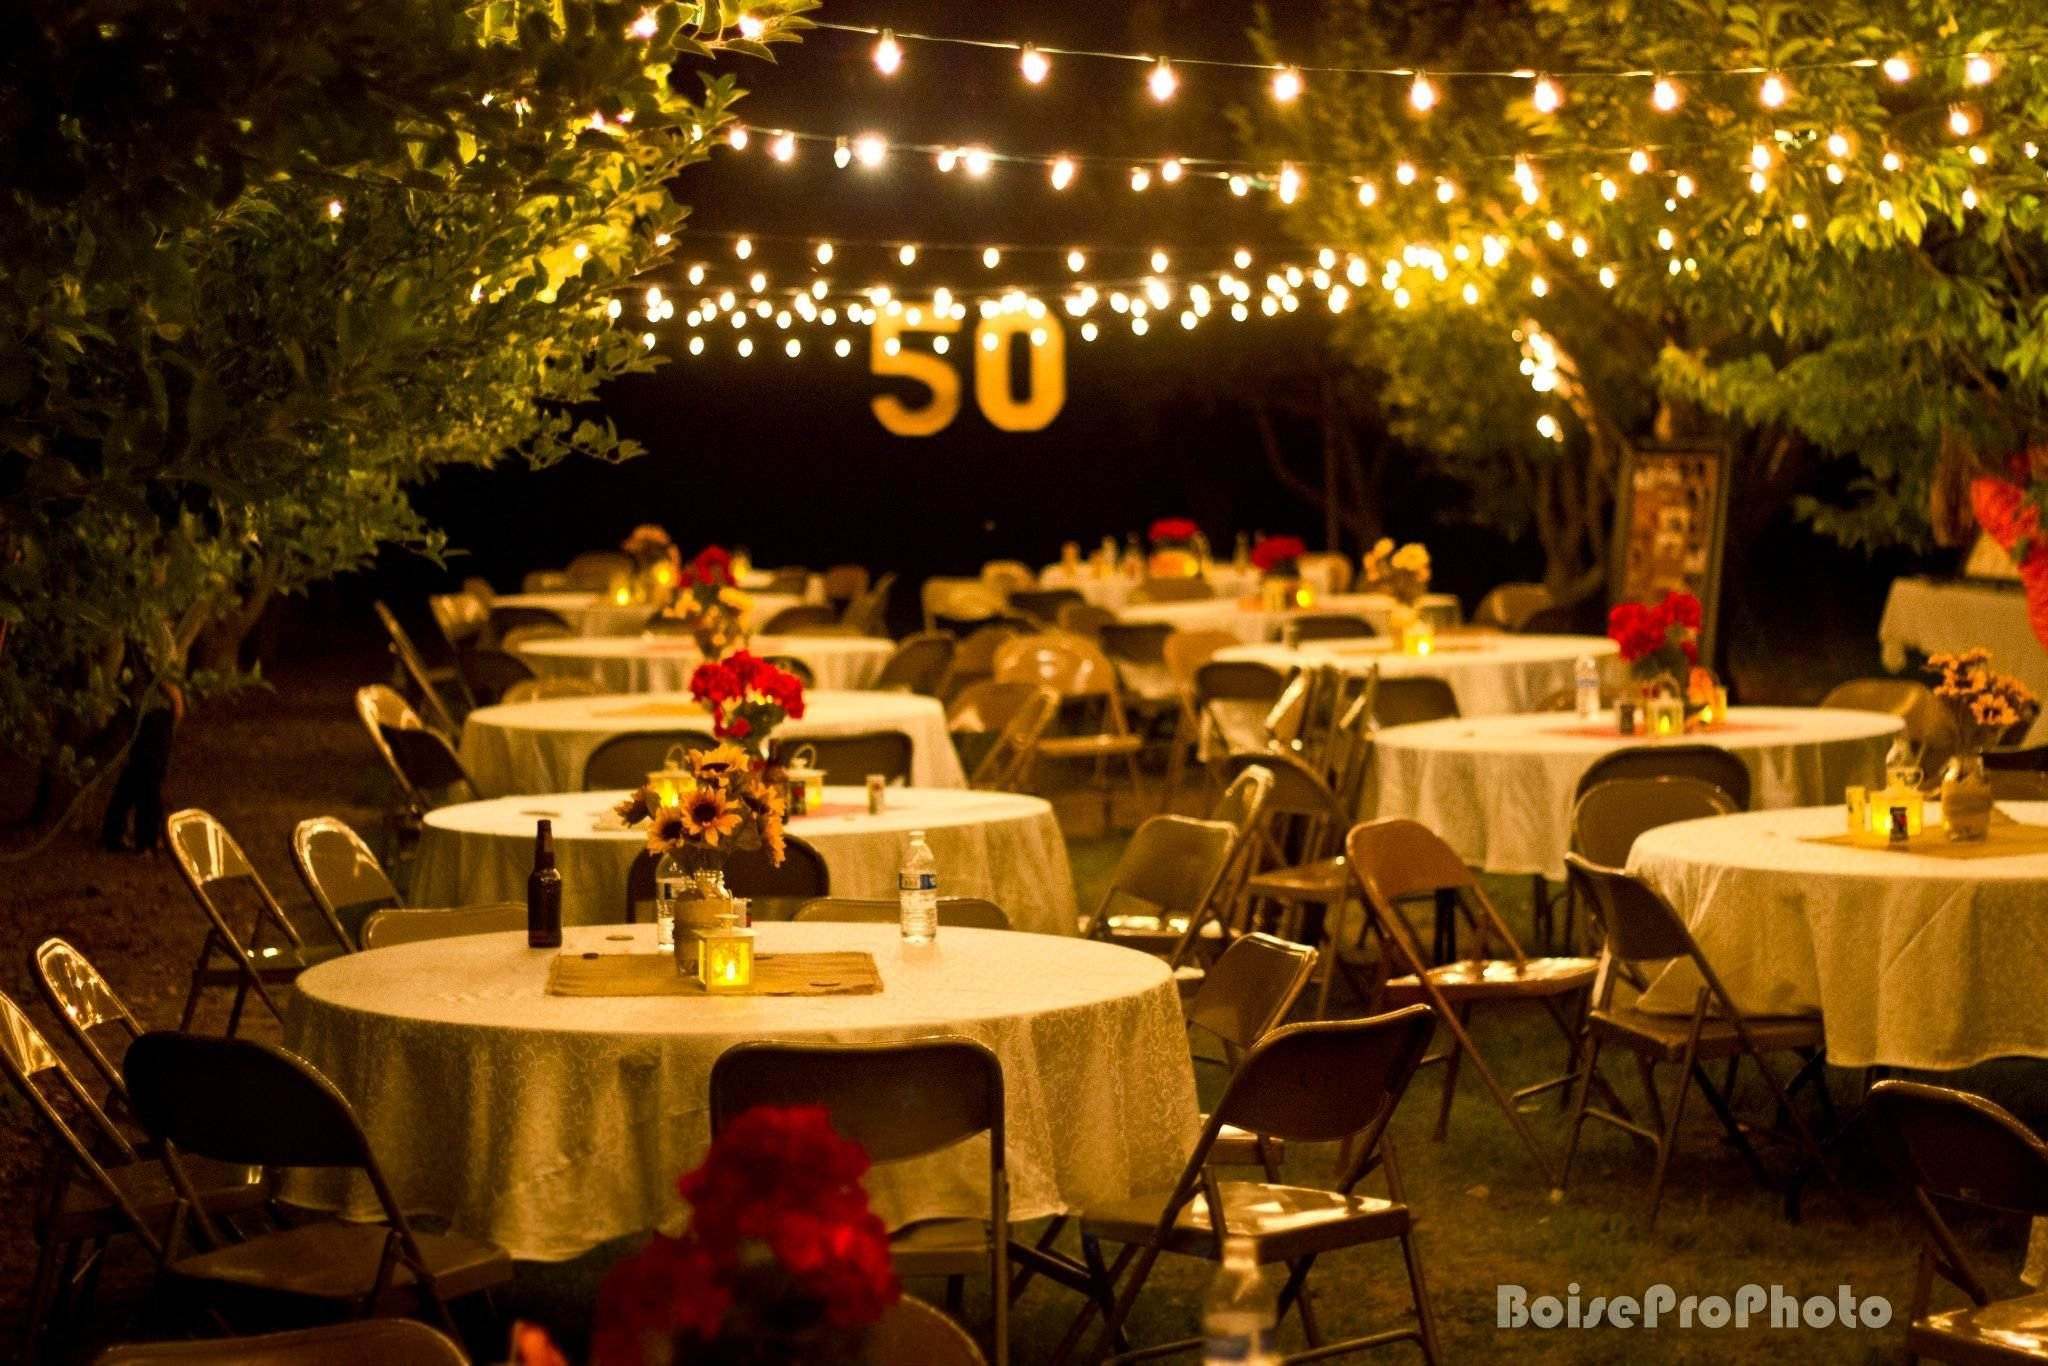 10 Wonderful Wedding Anniversary Ideas On A Budget diy 50th wedding anniversary party from salty bison anniversary 4 2020